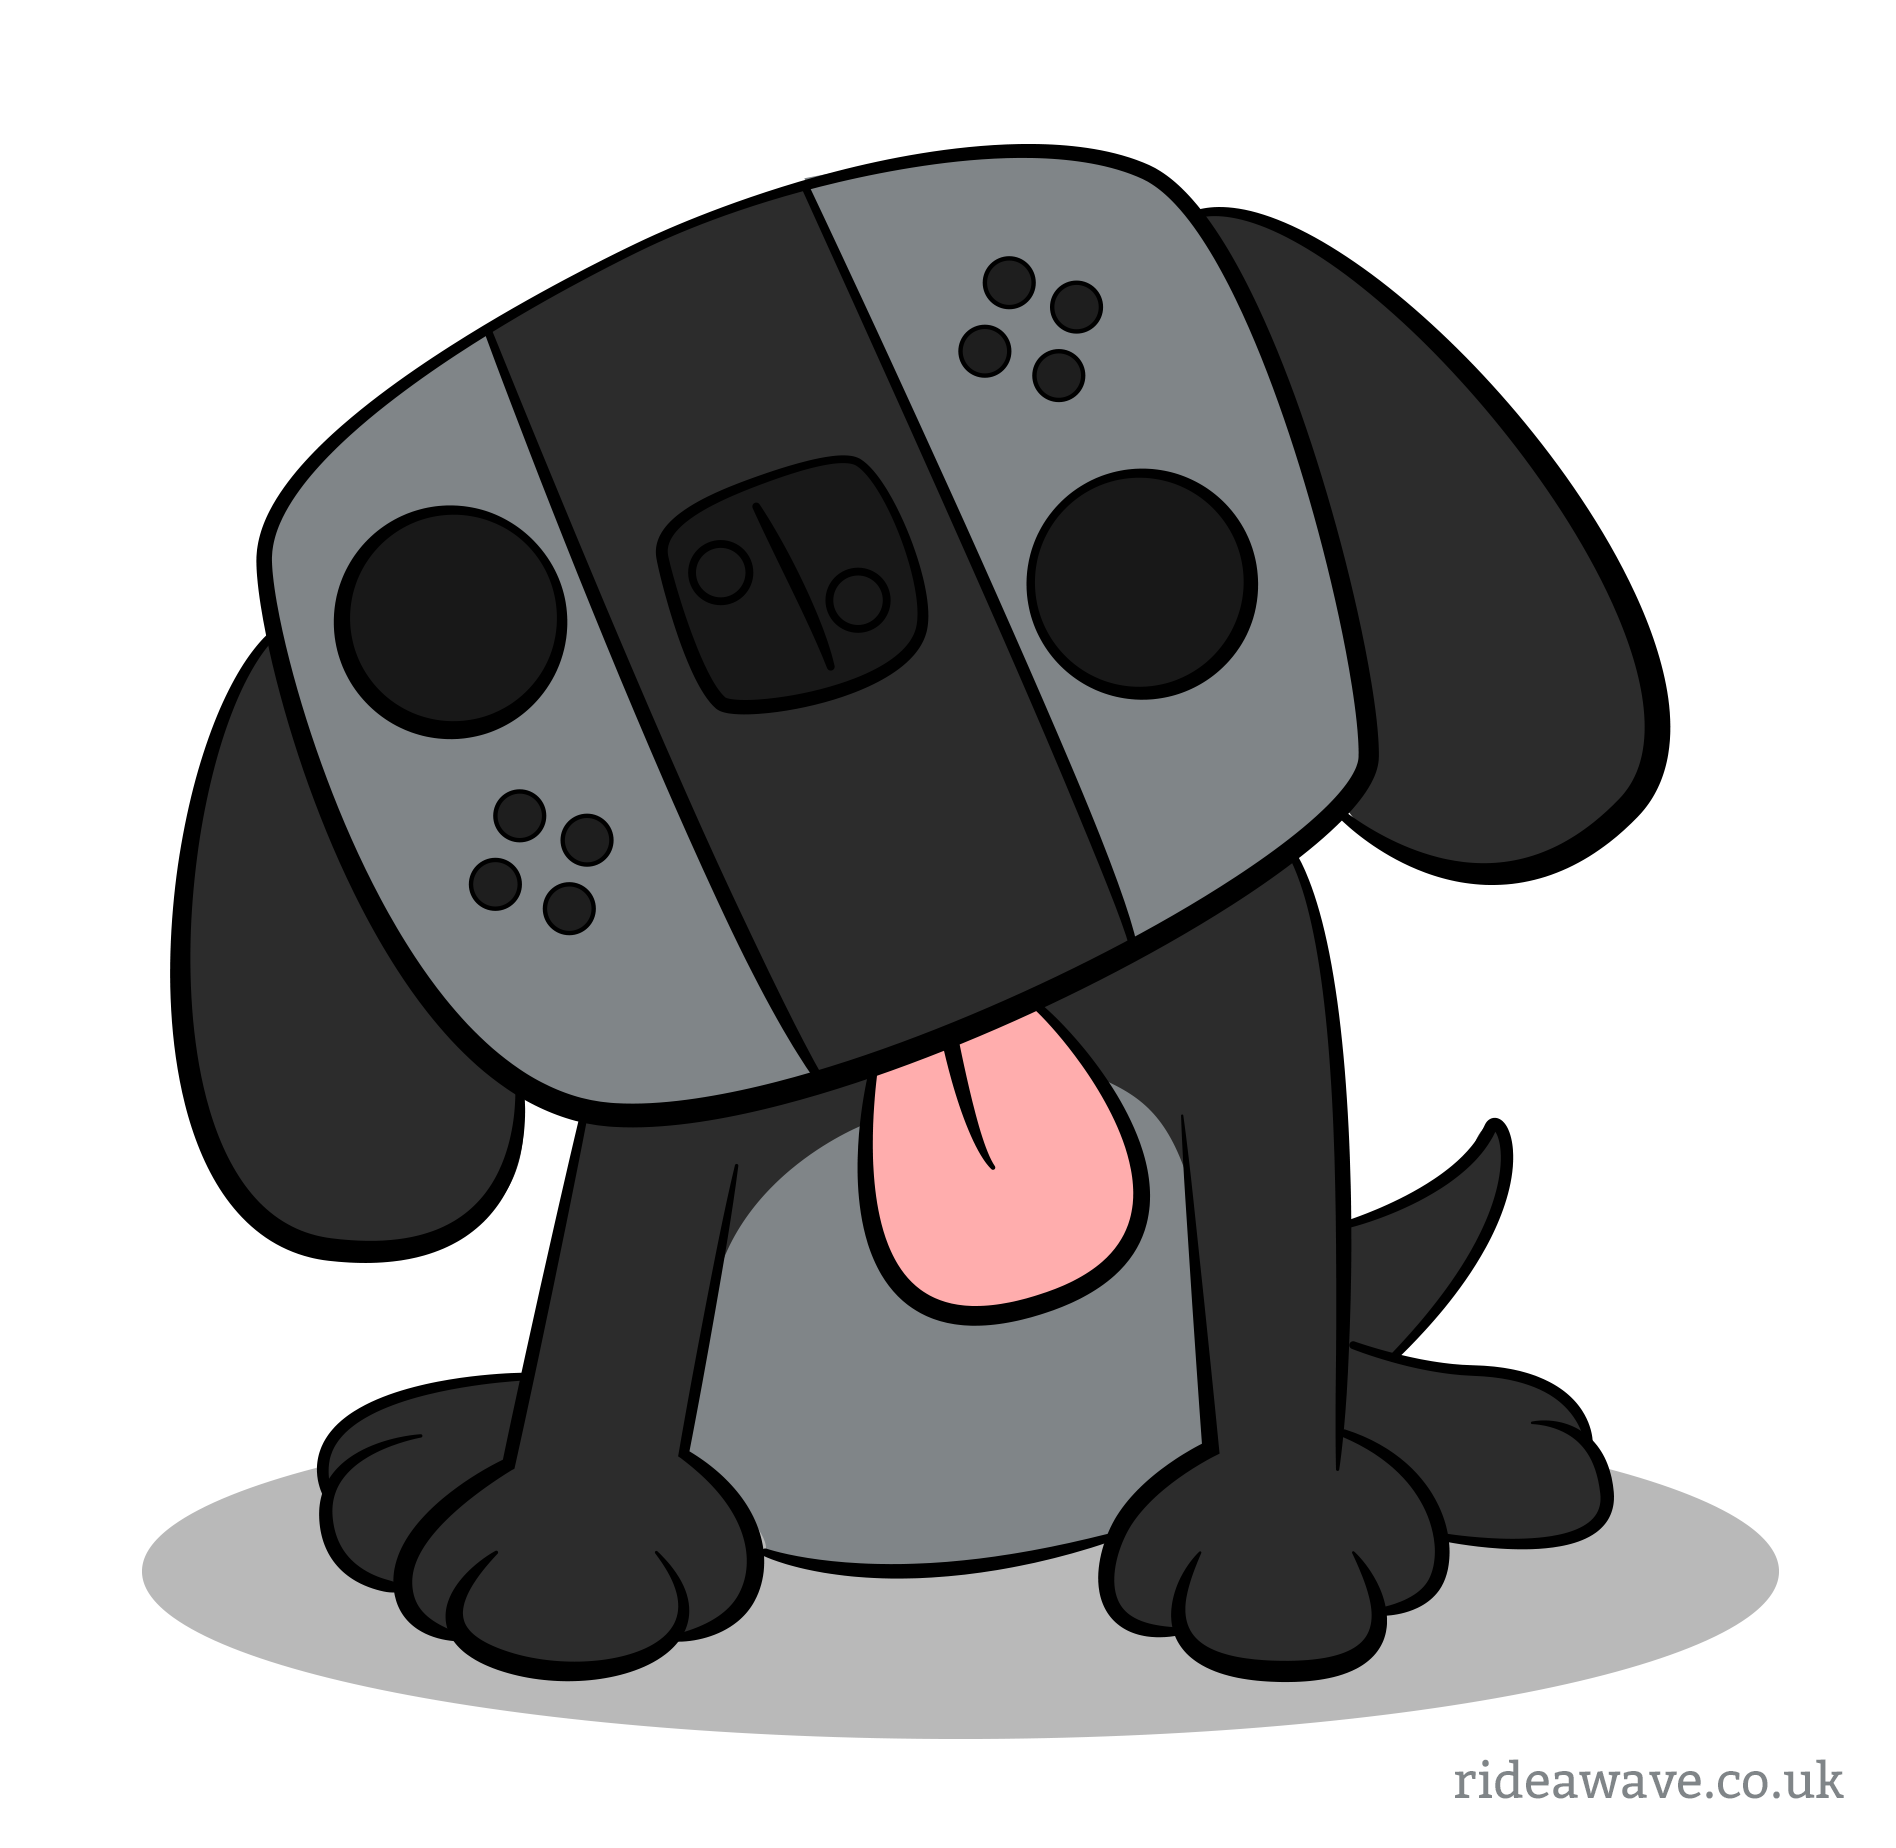 nintendo switch dog cartoon ride a wave design. Black Bedroom Furniture Sets. Home Design Ideas